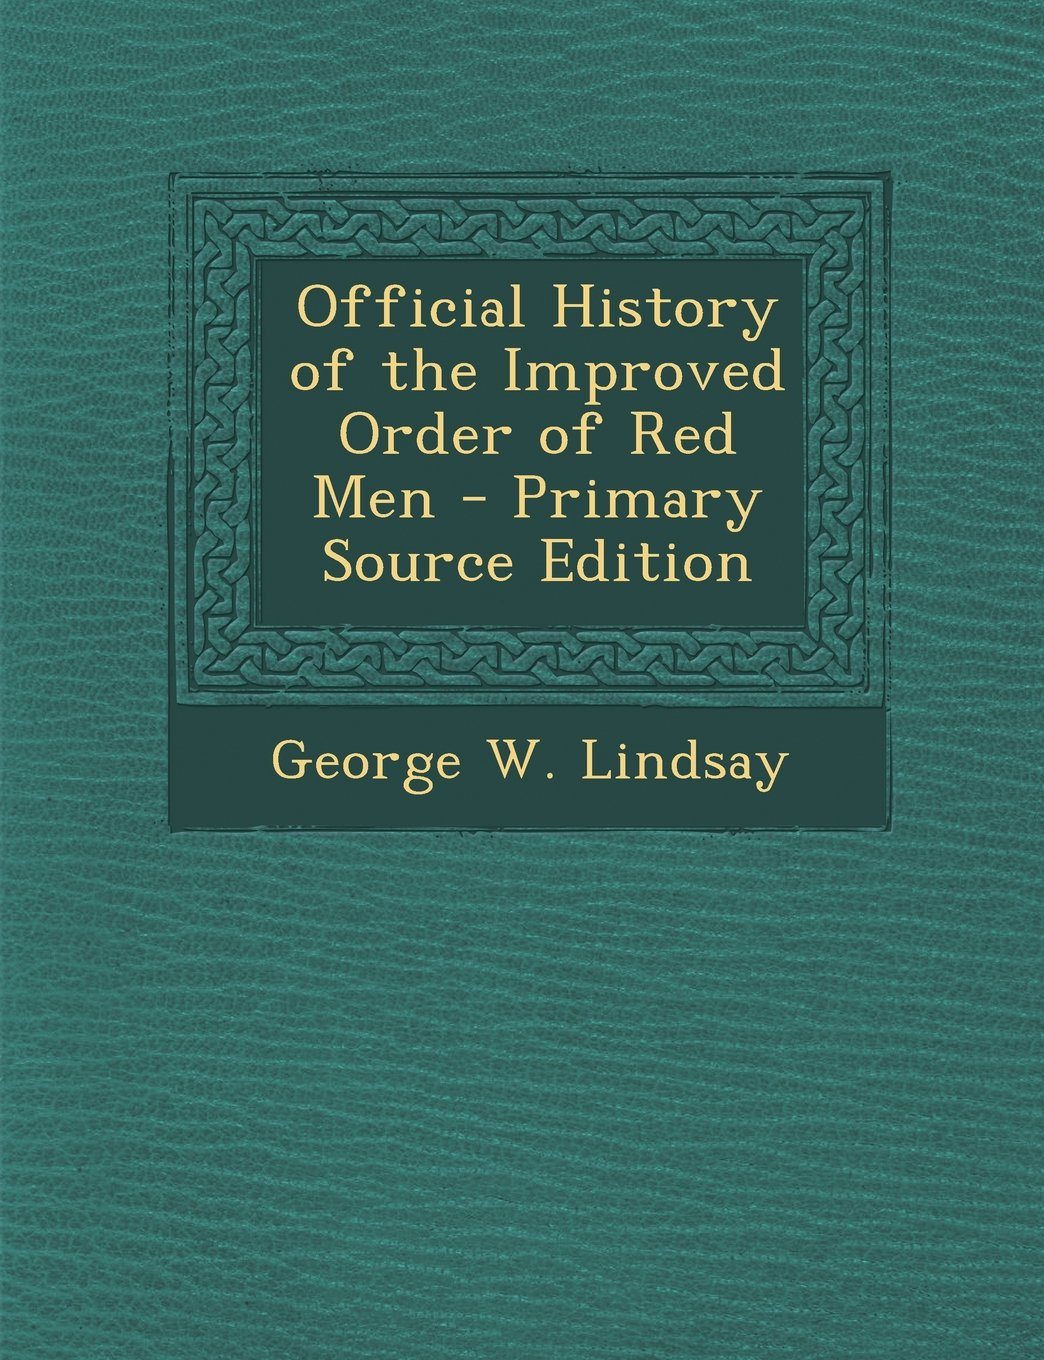 Download Official History of the Improved Order of Red Men pdf